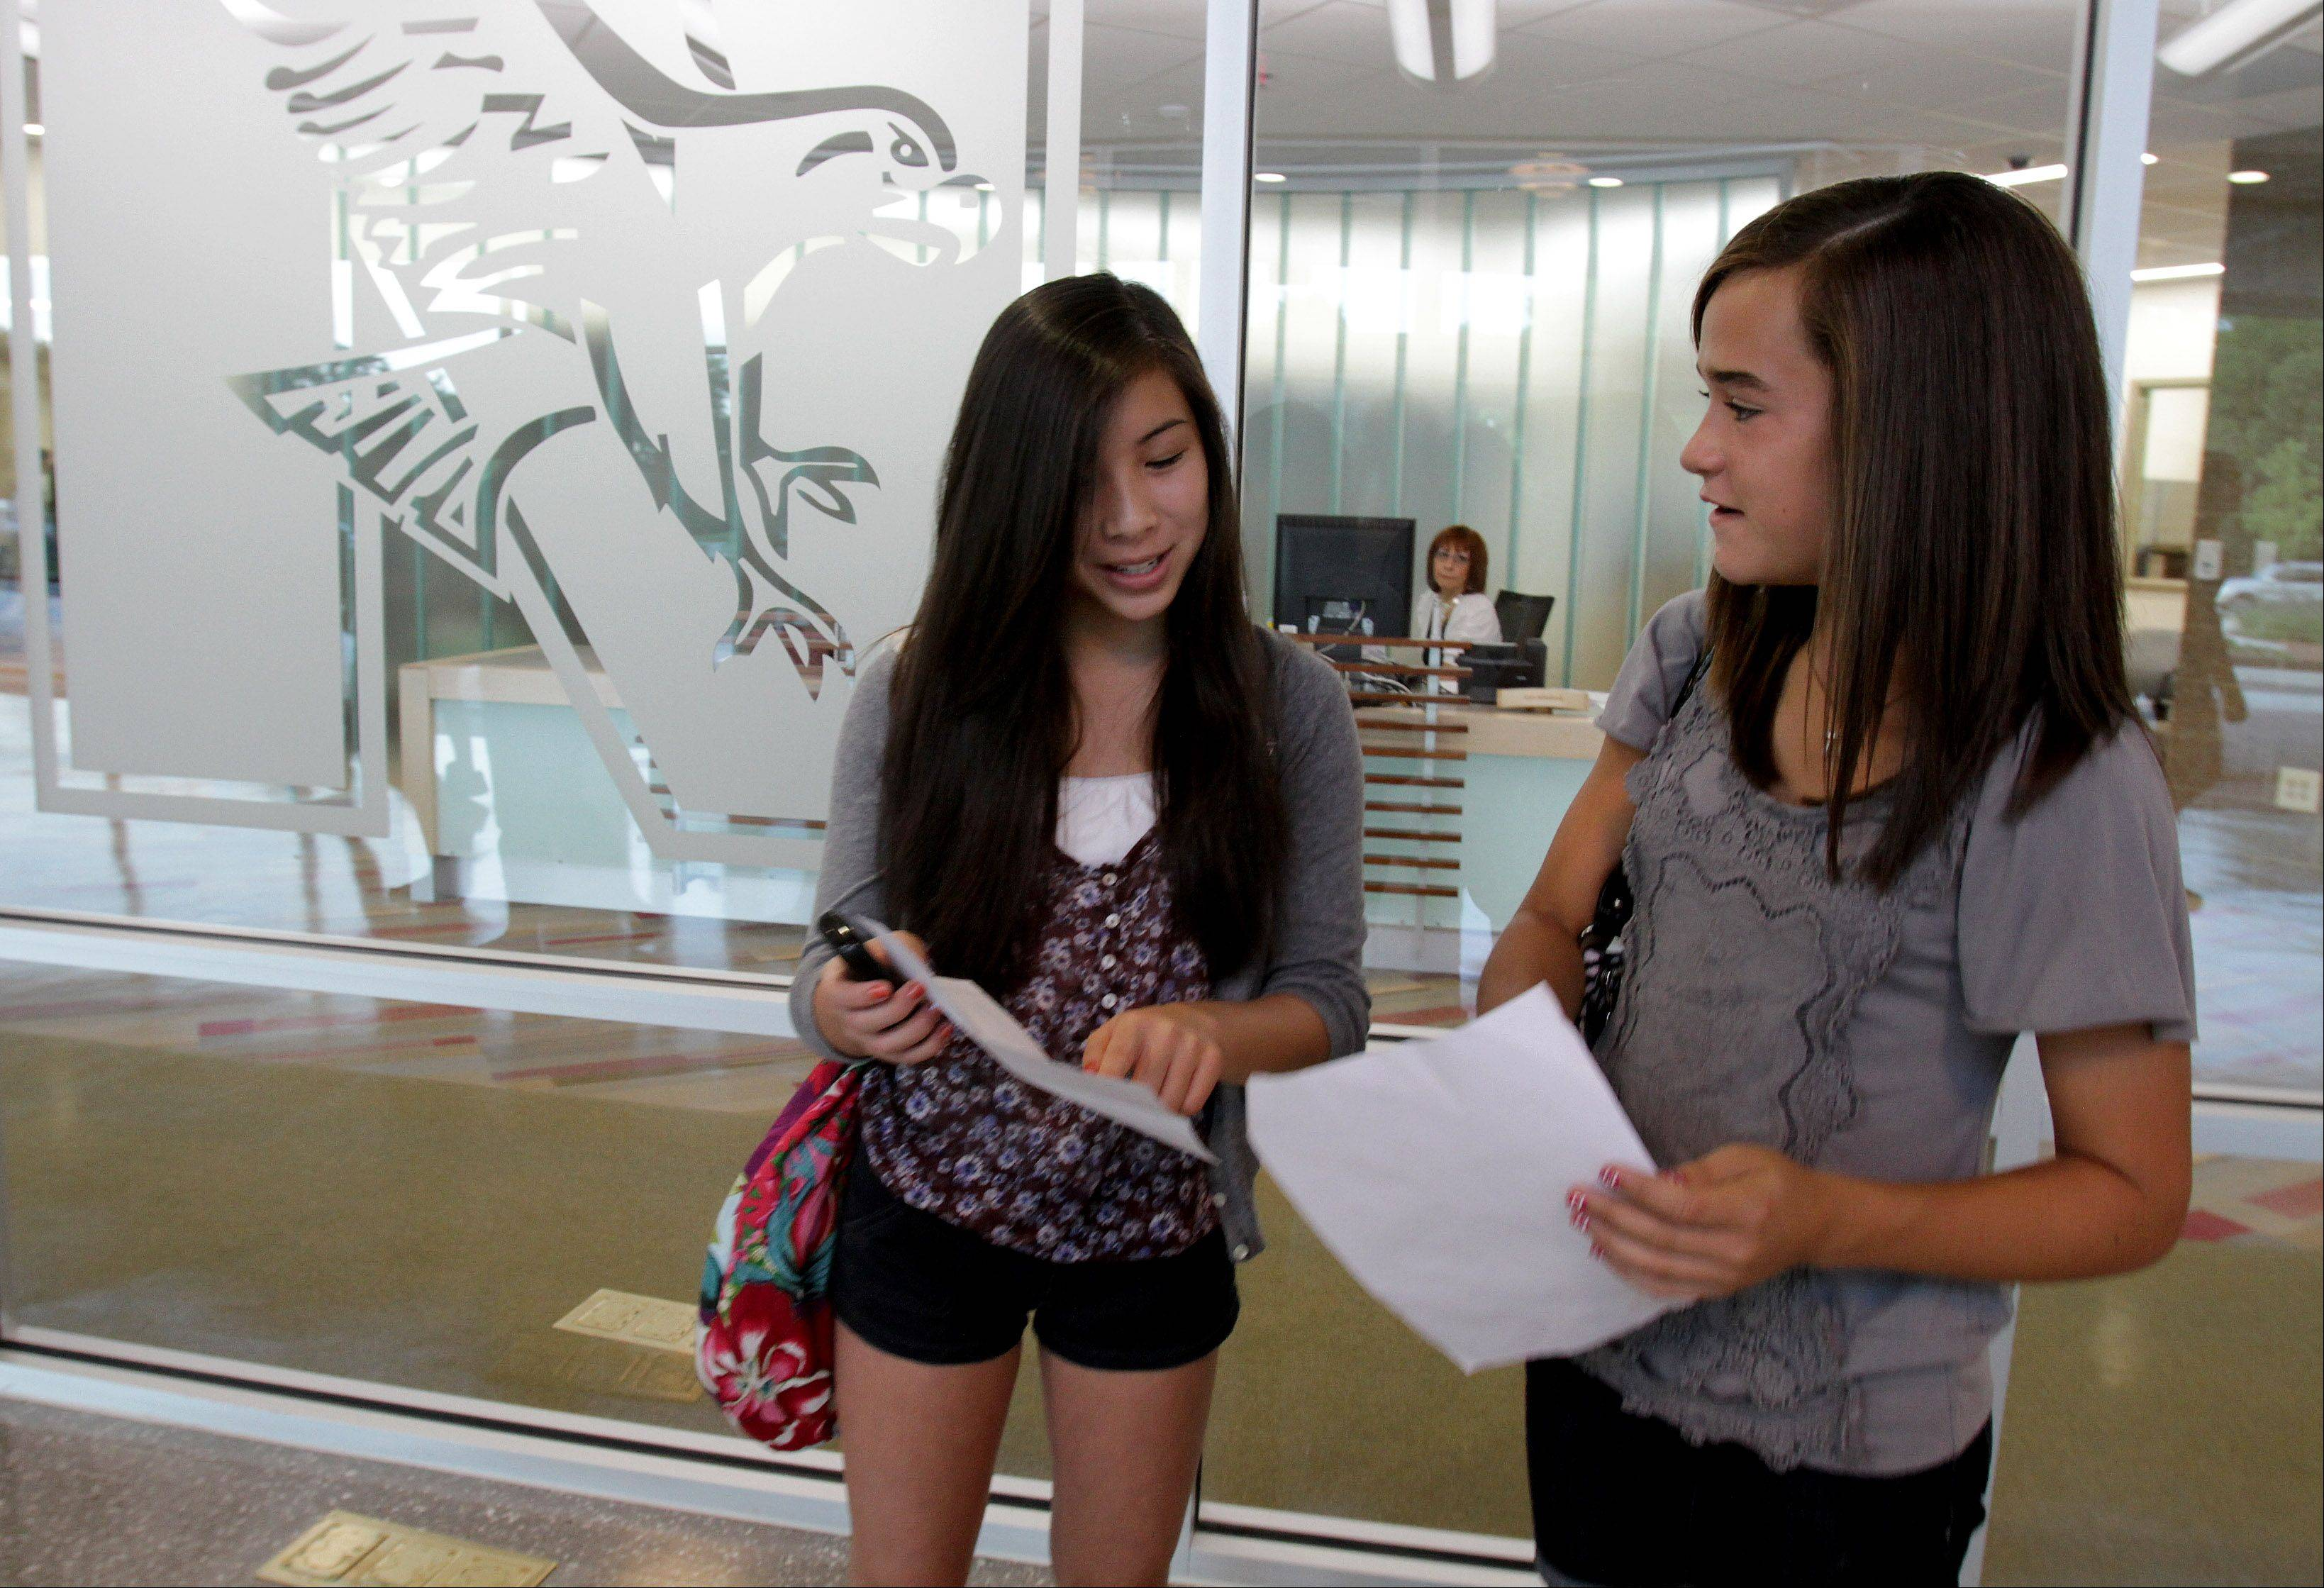 Freshman Mariel Singson and Katie Lamich look over their schedule during the first day of school in the fully renovated Naperville Central High School.